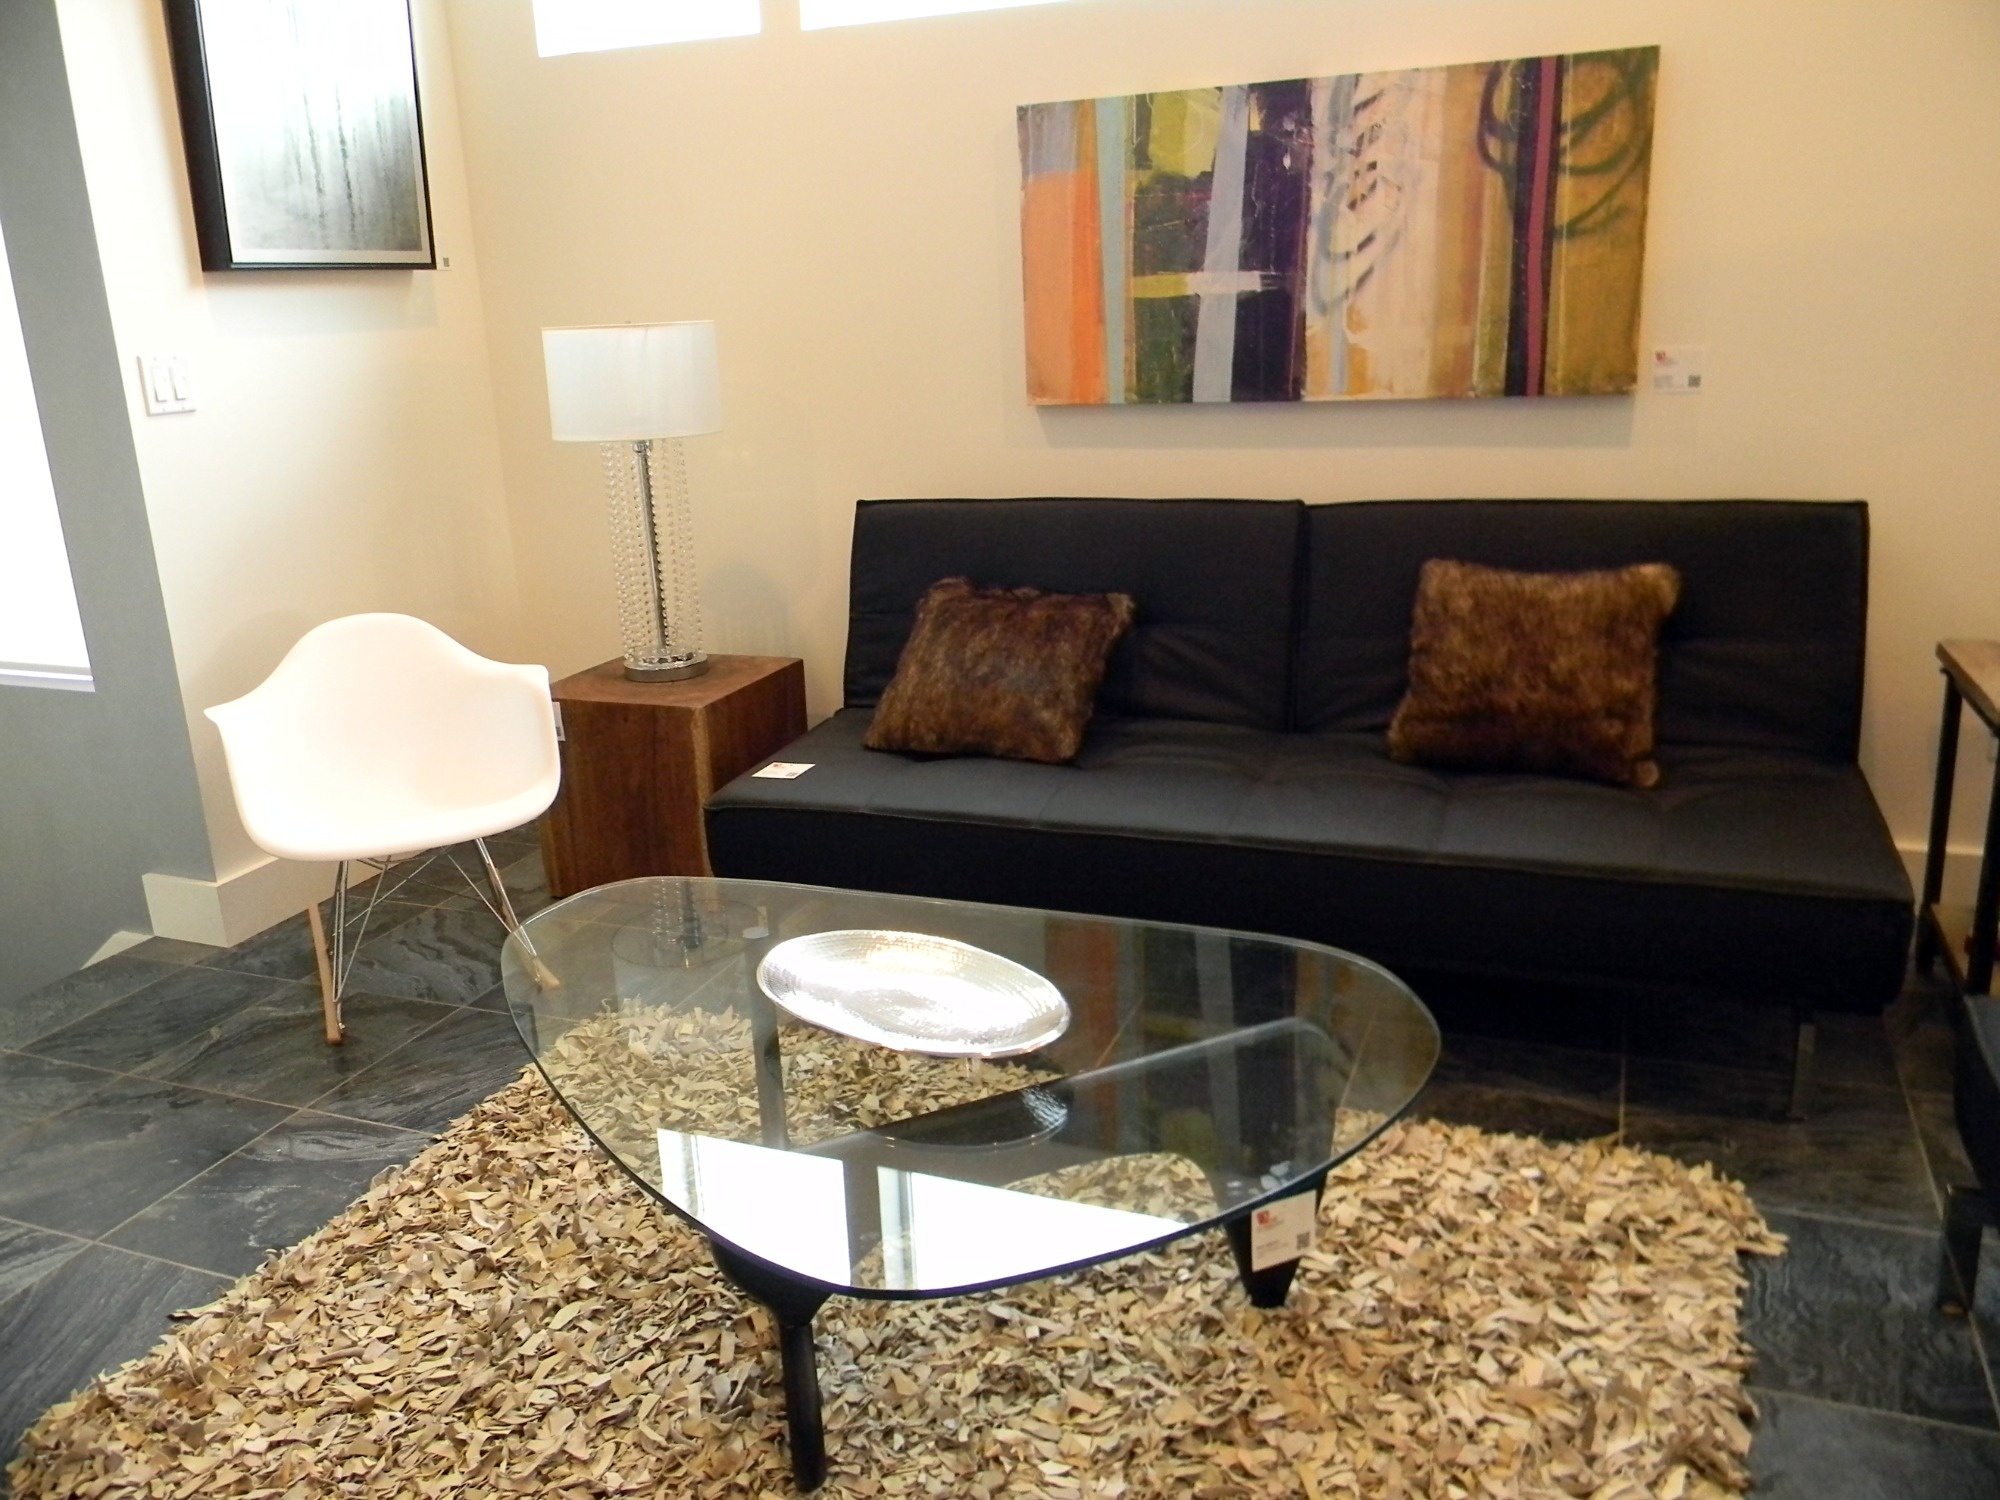 Parade of Homes Preview (part 1) - Organize and Decorate Everything